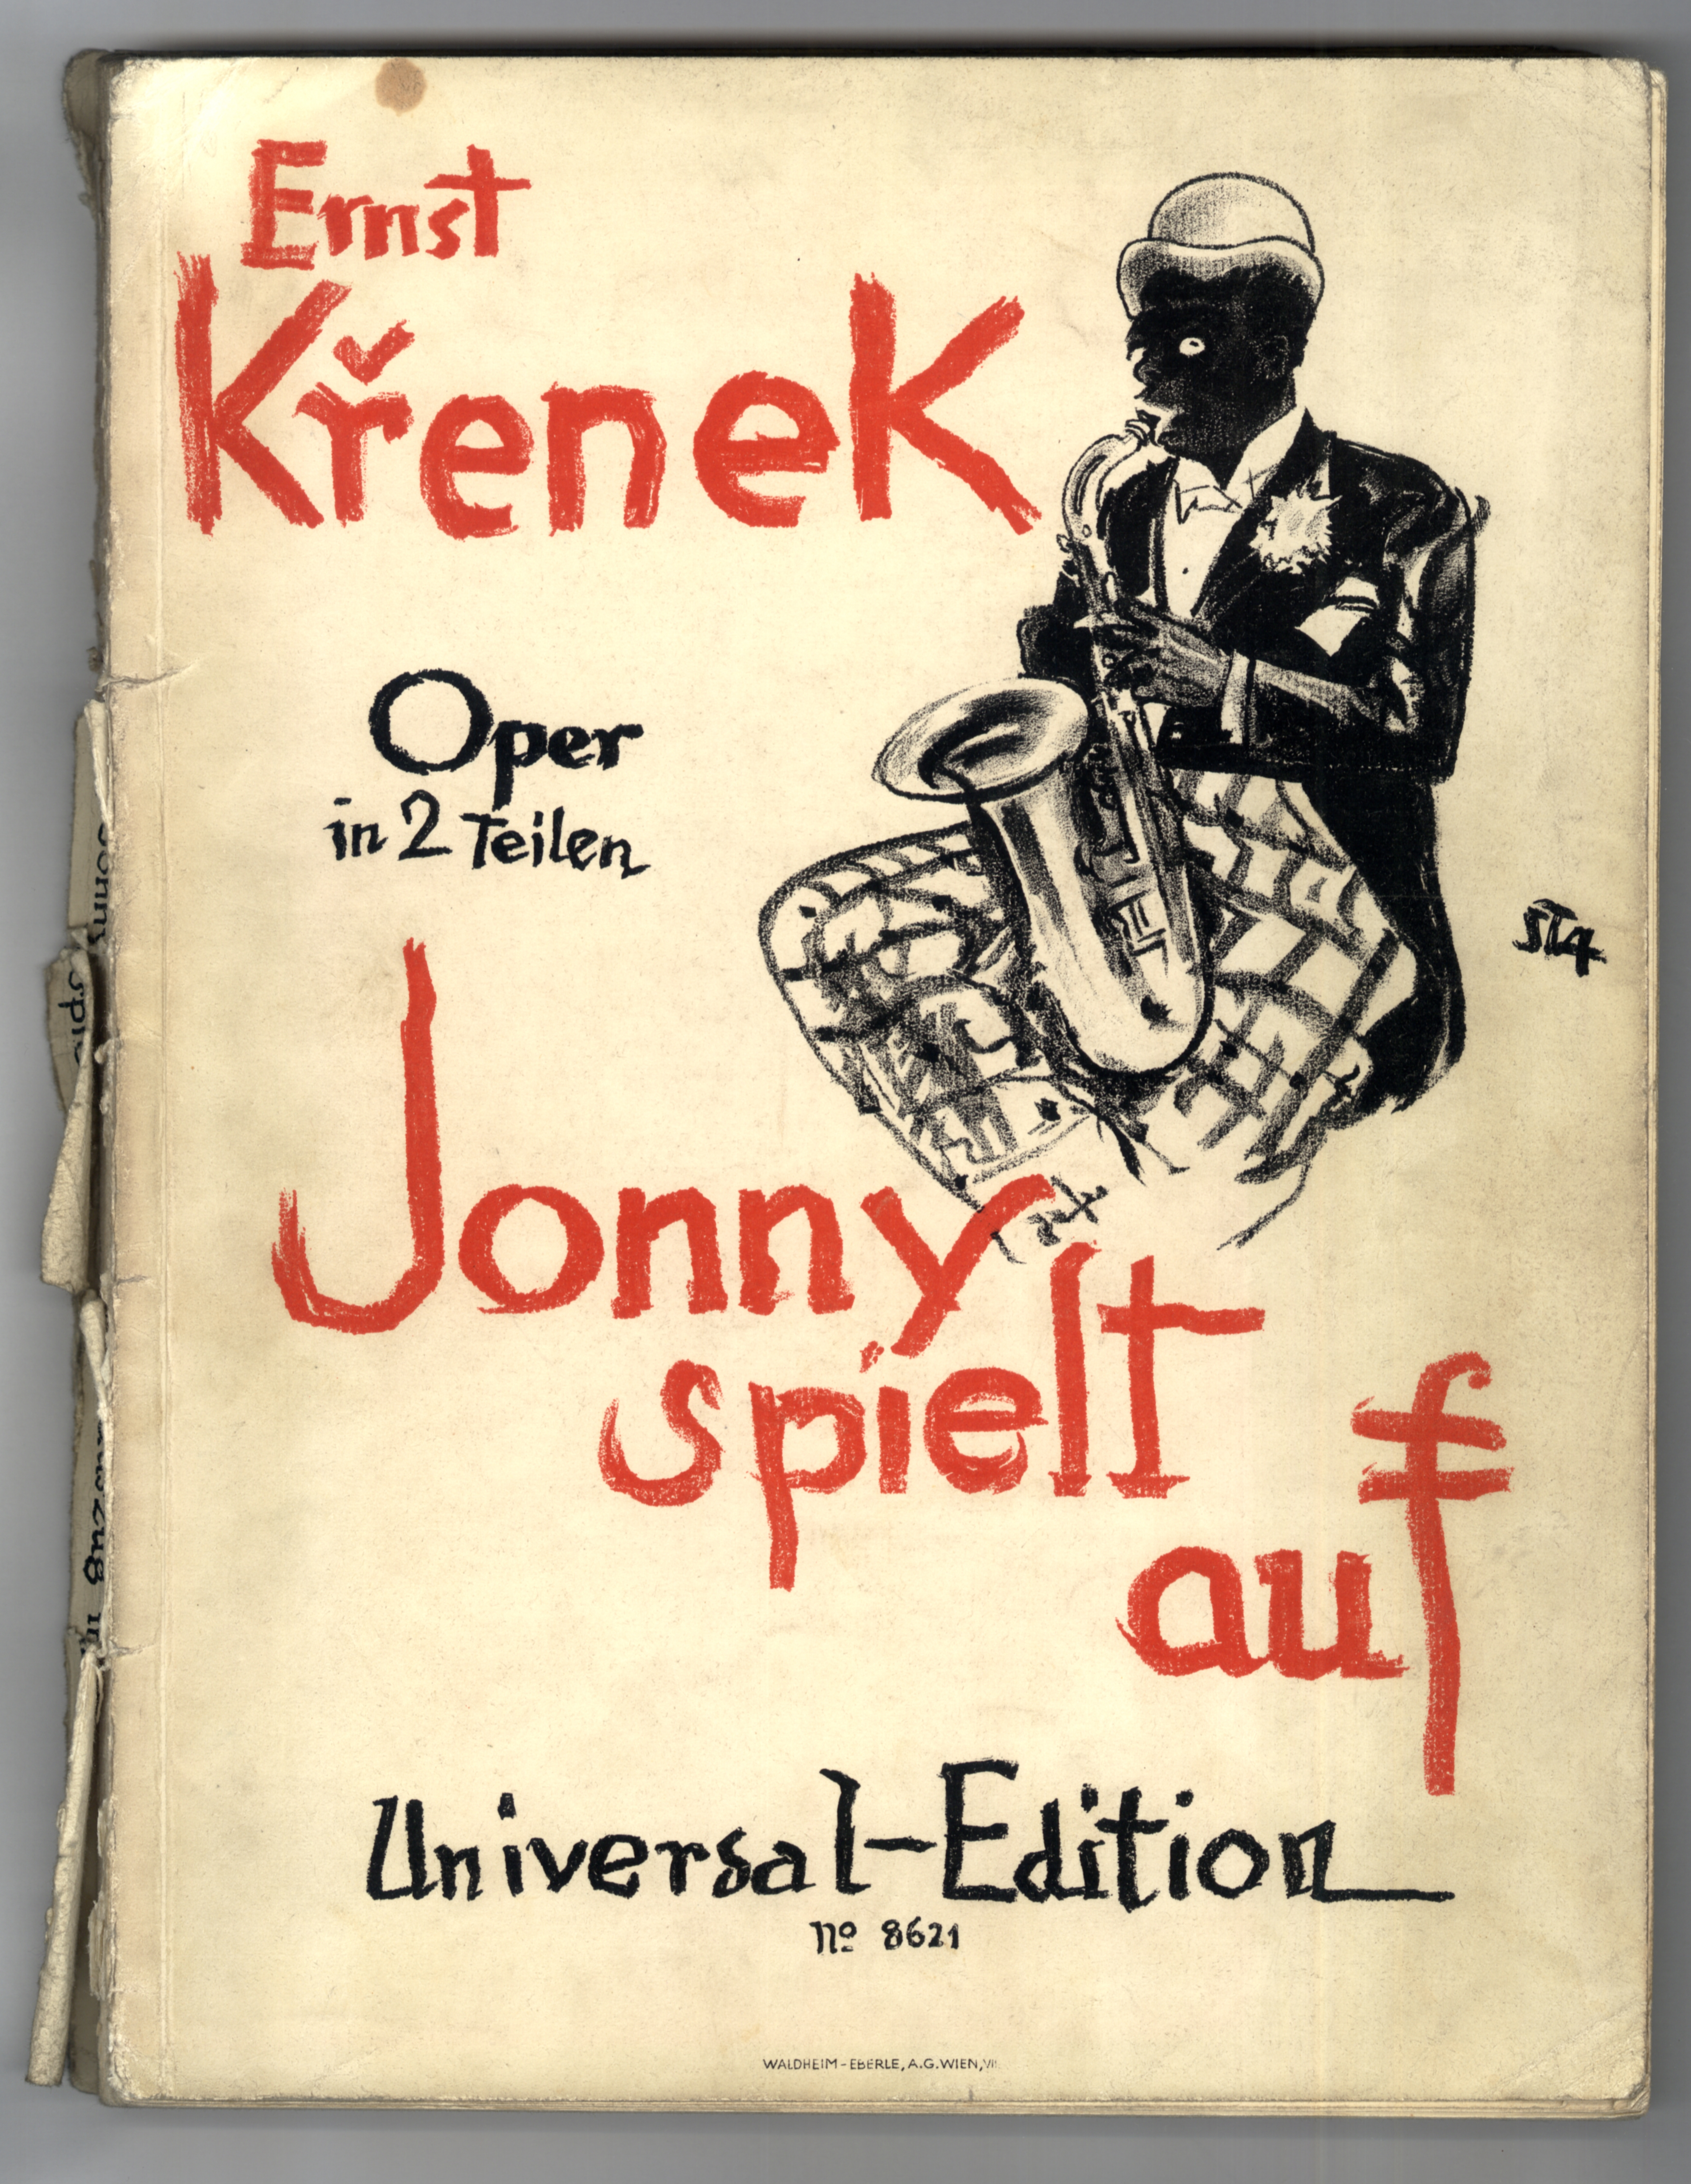 Cover of Musical Score for Jonny Spiel Auf. By graphic design: Arthur Stadler (1892-1937) (Andrea1903) [Public domain], via Wikimedia Commons